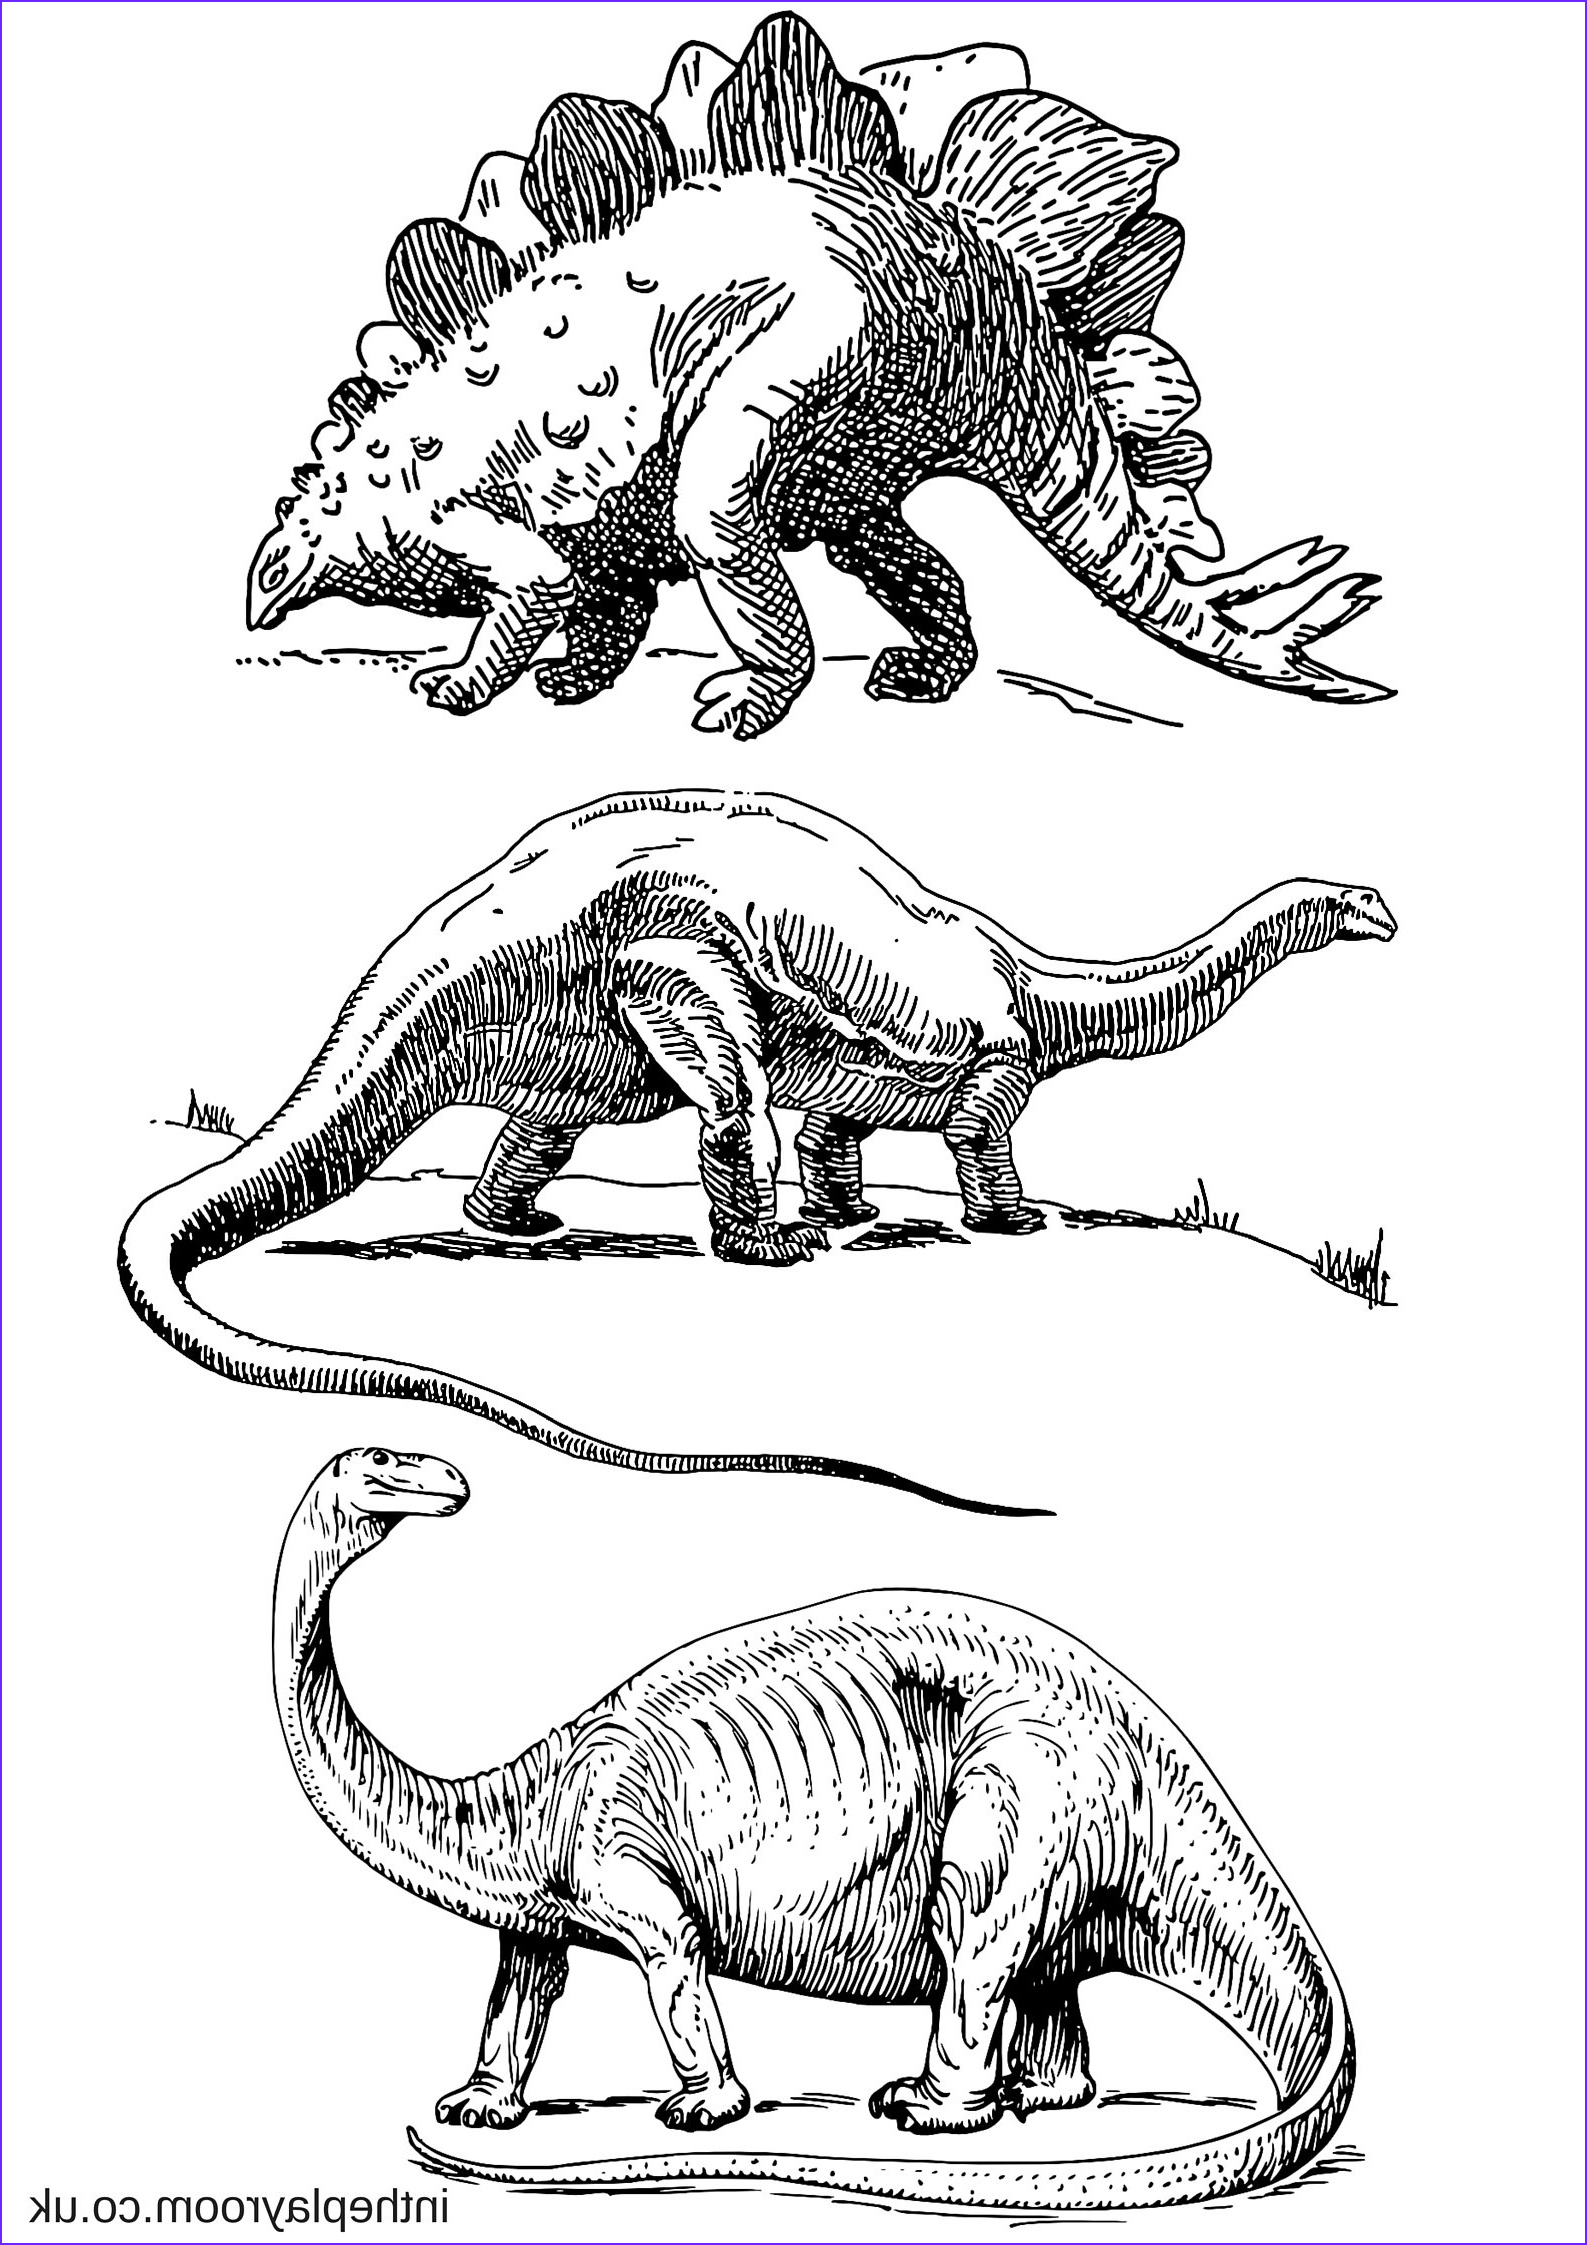 Coloring Page Dinosaur Best Of Gallery Dinosaur Colouring Pages In the Playroom